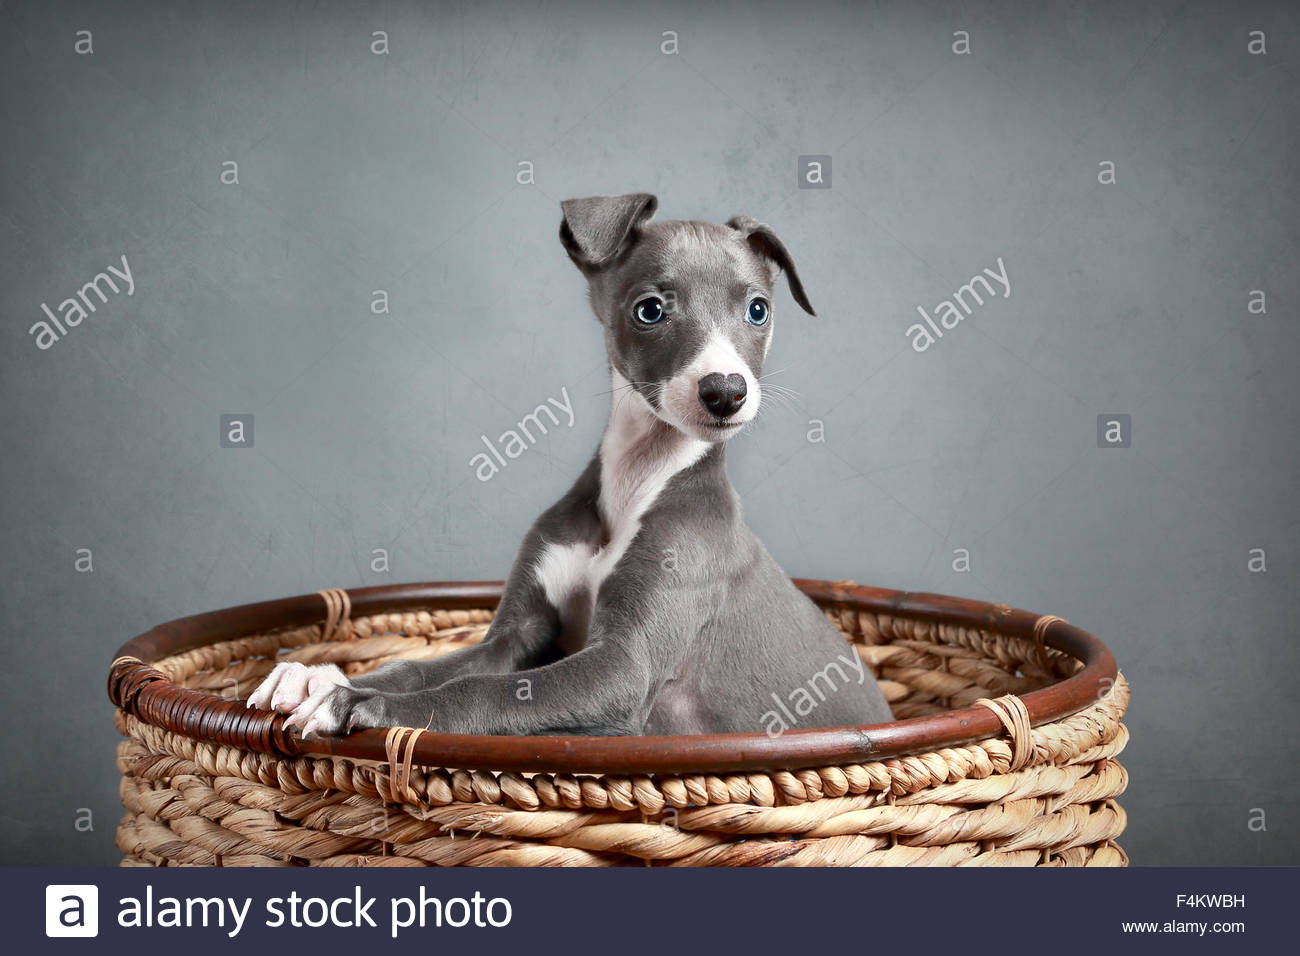 grau blau whippet welpen peering heraus ber wicker basket. Black Bedroom Furniture Sets. Home Design Ideas